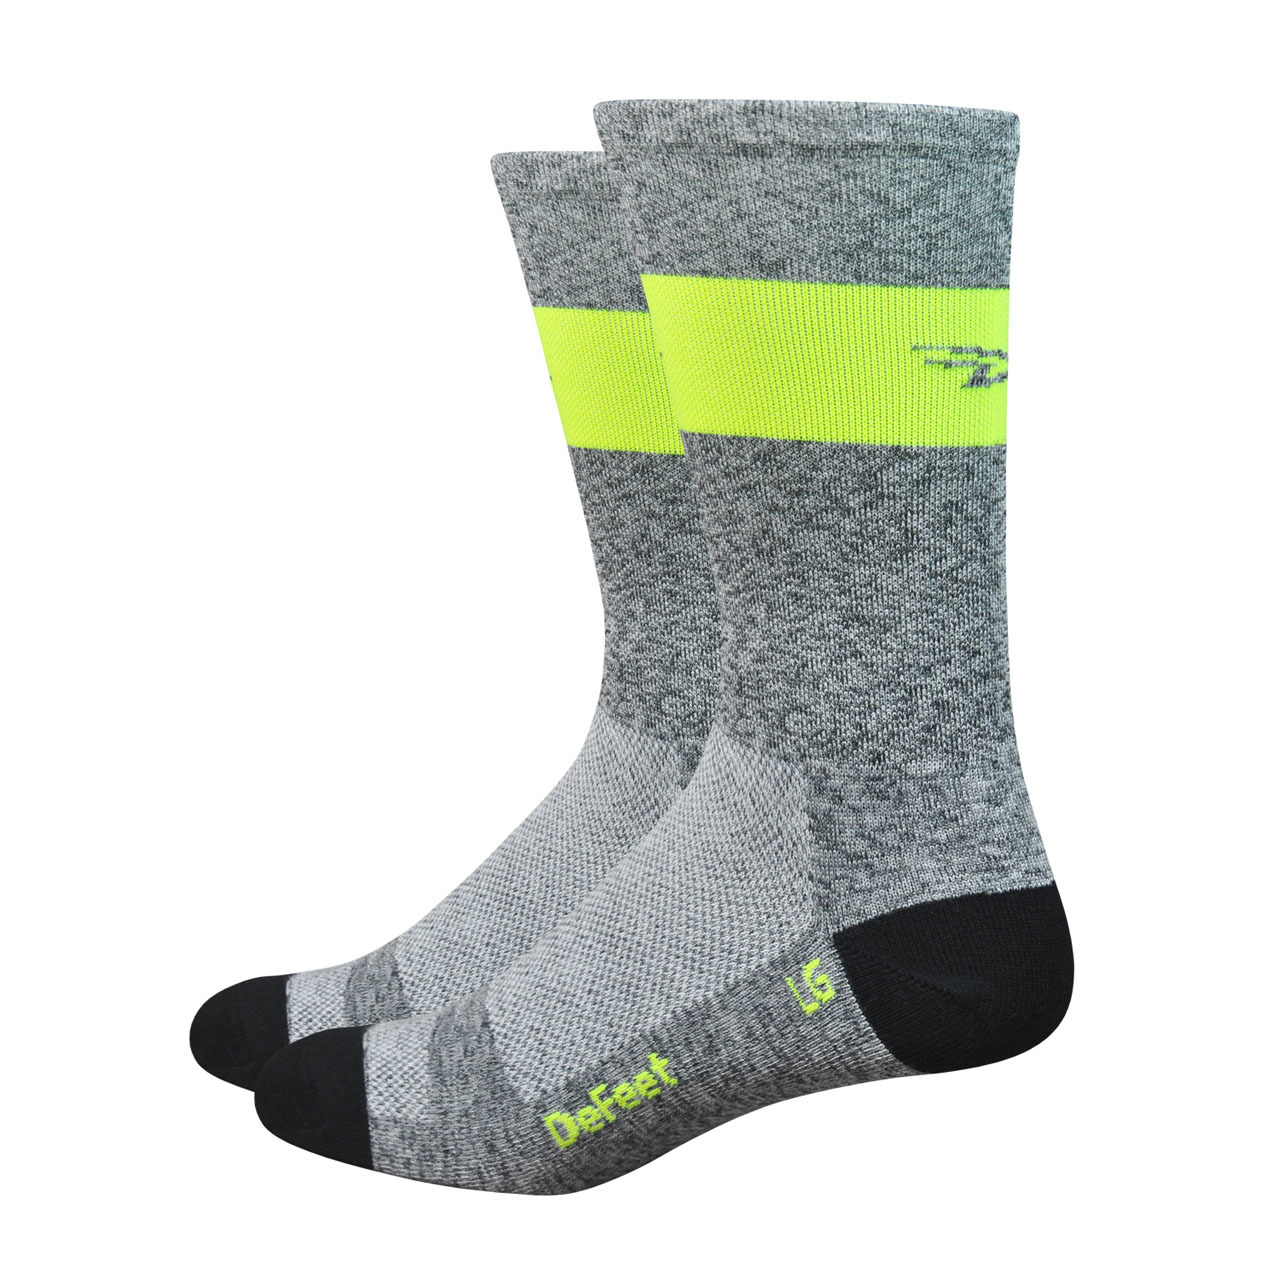 Mini-thin gray sock with yellow accent